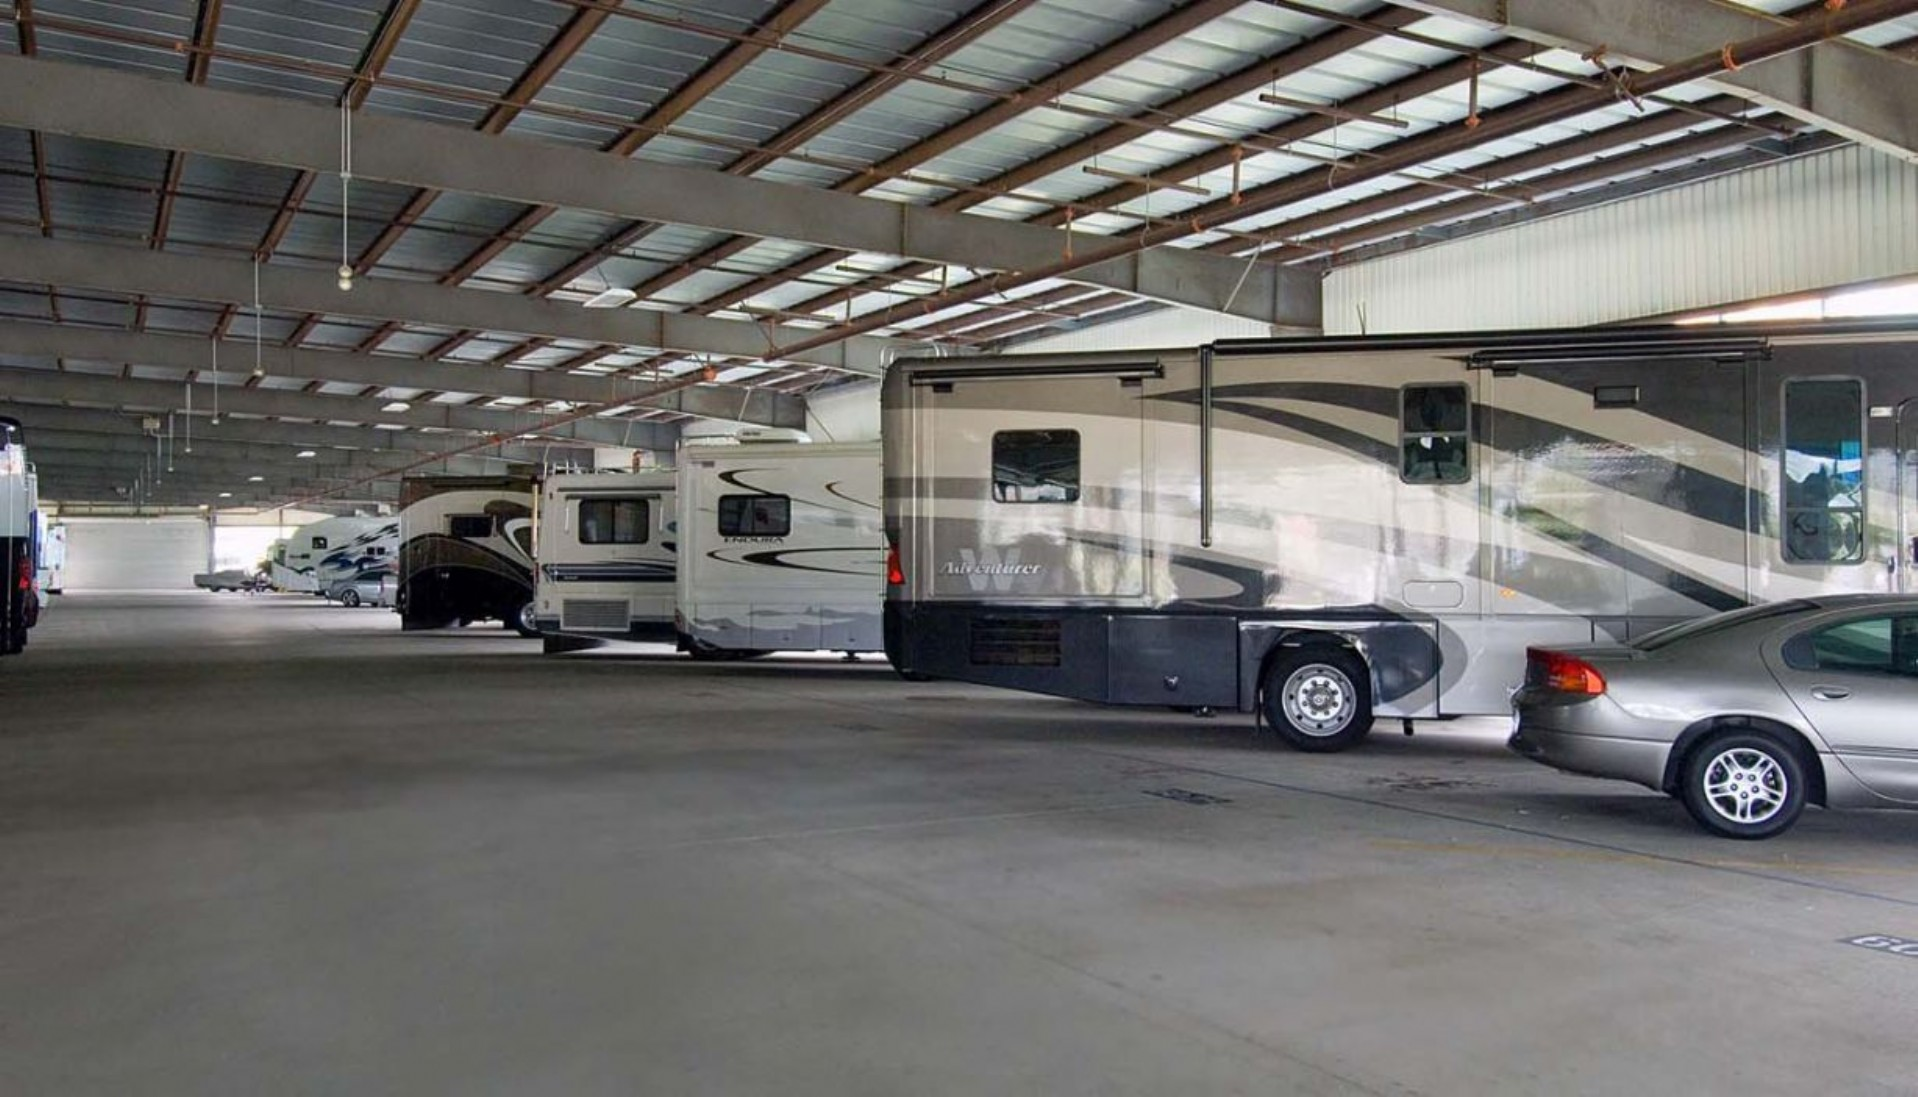 RV's, boats, cars and trailers parked inside a 100,000 sq.ft. vehicle storage facility